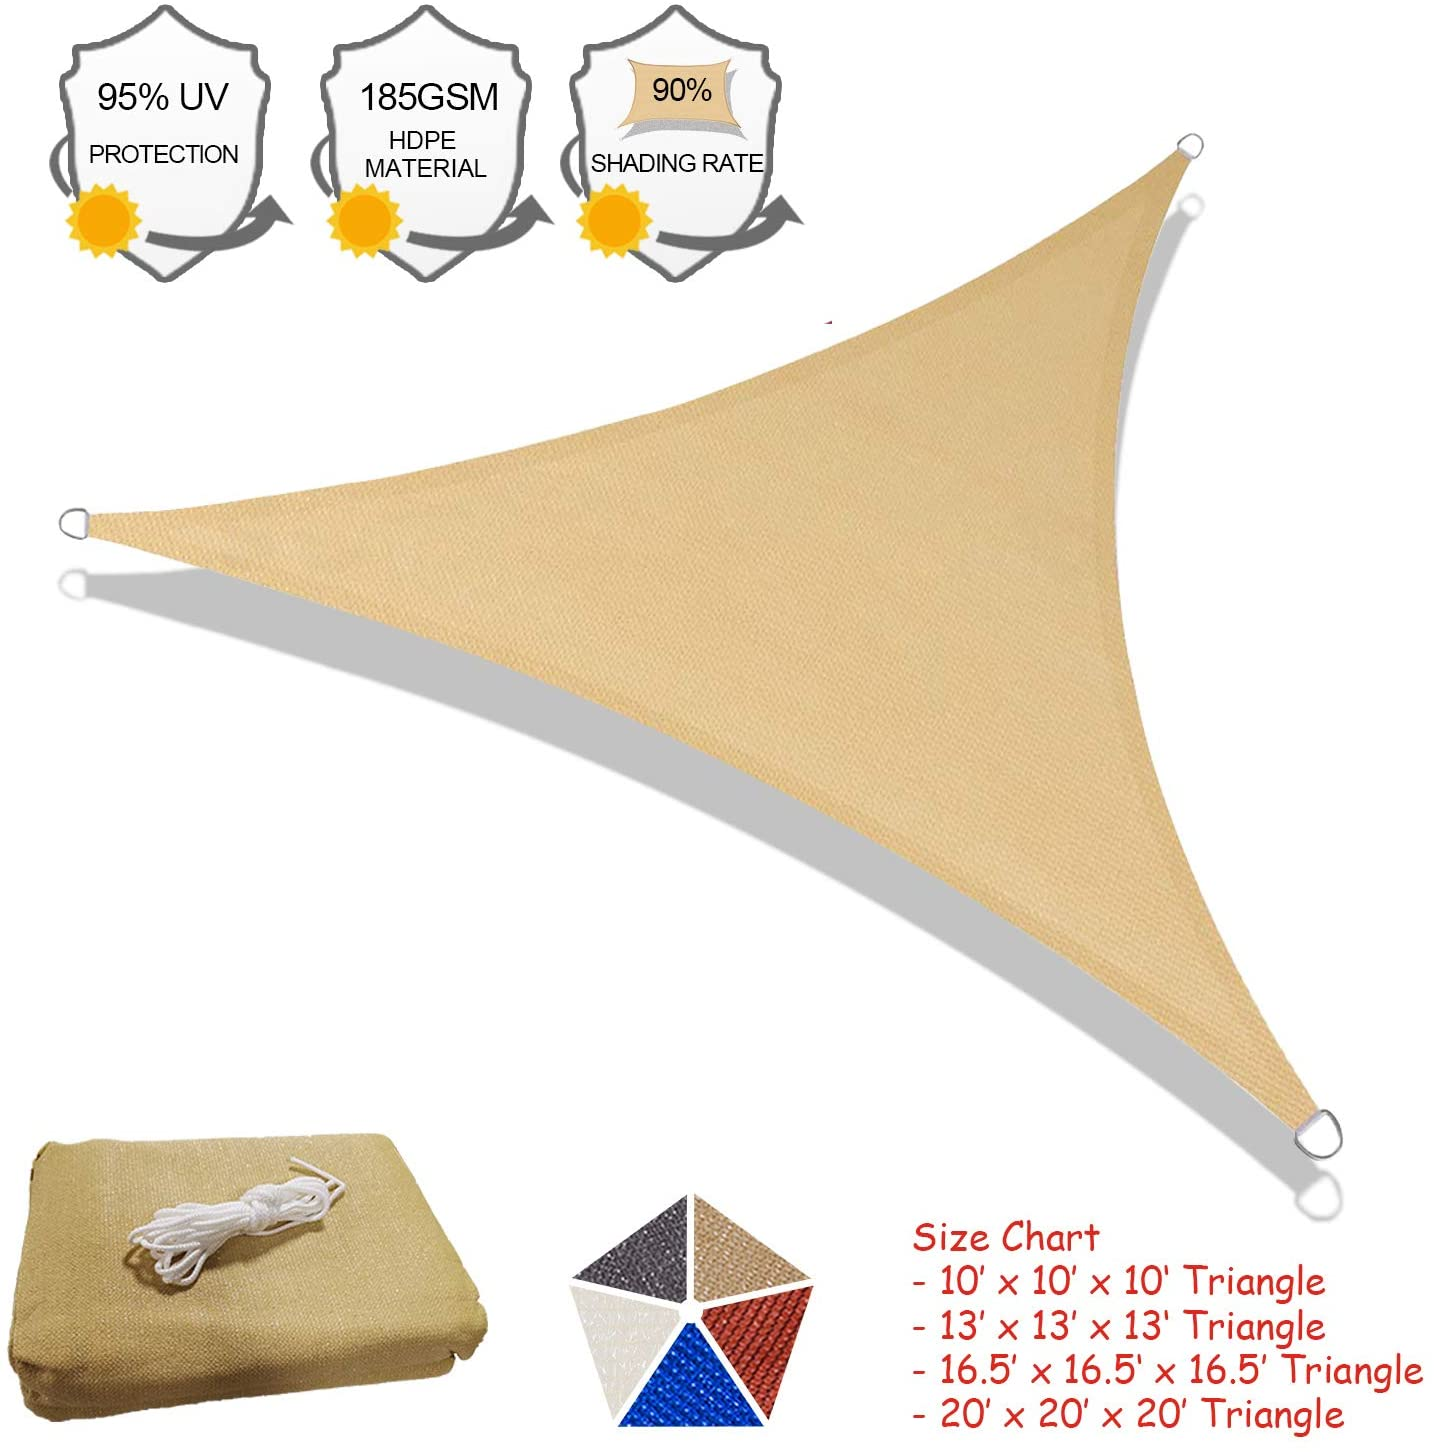 SUNLAX Sun Shade Sail, 10'x10'X10' Sand Triangle Outdoor Awning Shade Cover 185GSM HDPE UV Block for Patio Shading